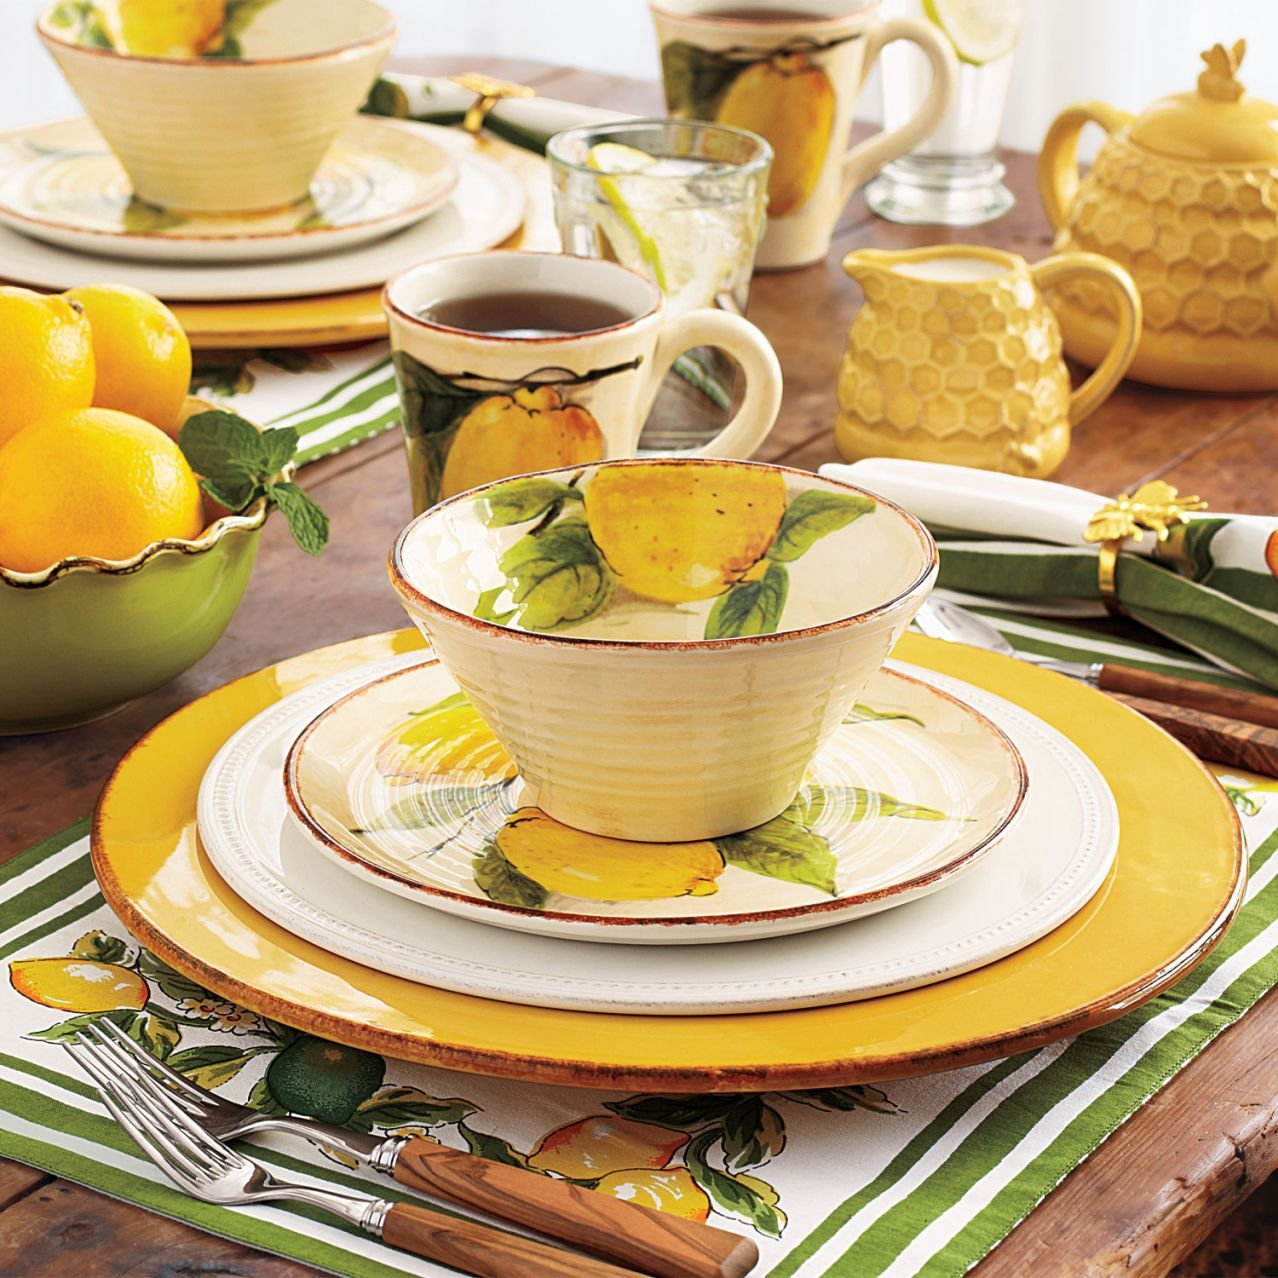 Lemon Design Dinnerware So Bright And Cheerful Would Be